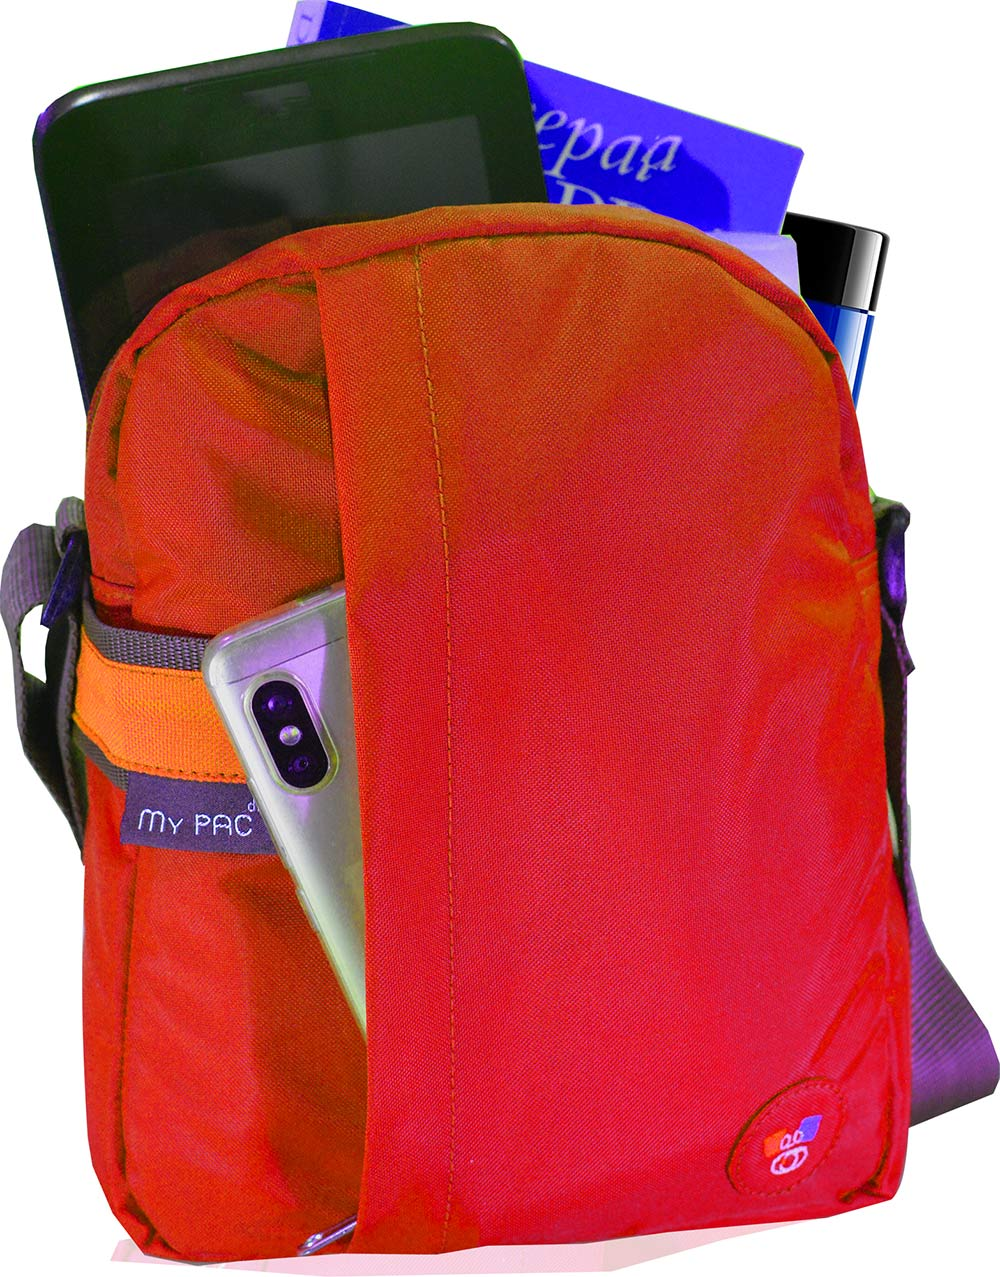 6c6fa8f3360 my pac ViVaa unisex waterproof Sling bag Red for C11593-3. Please upgrade  to full version of Magic Zoom™. Zoom. Move your mouse over image